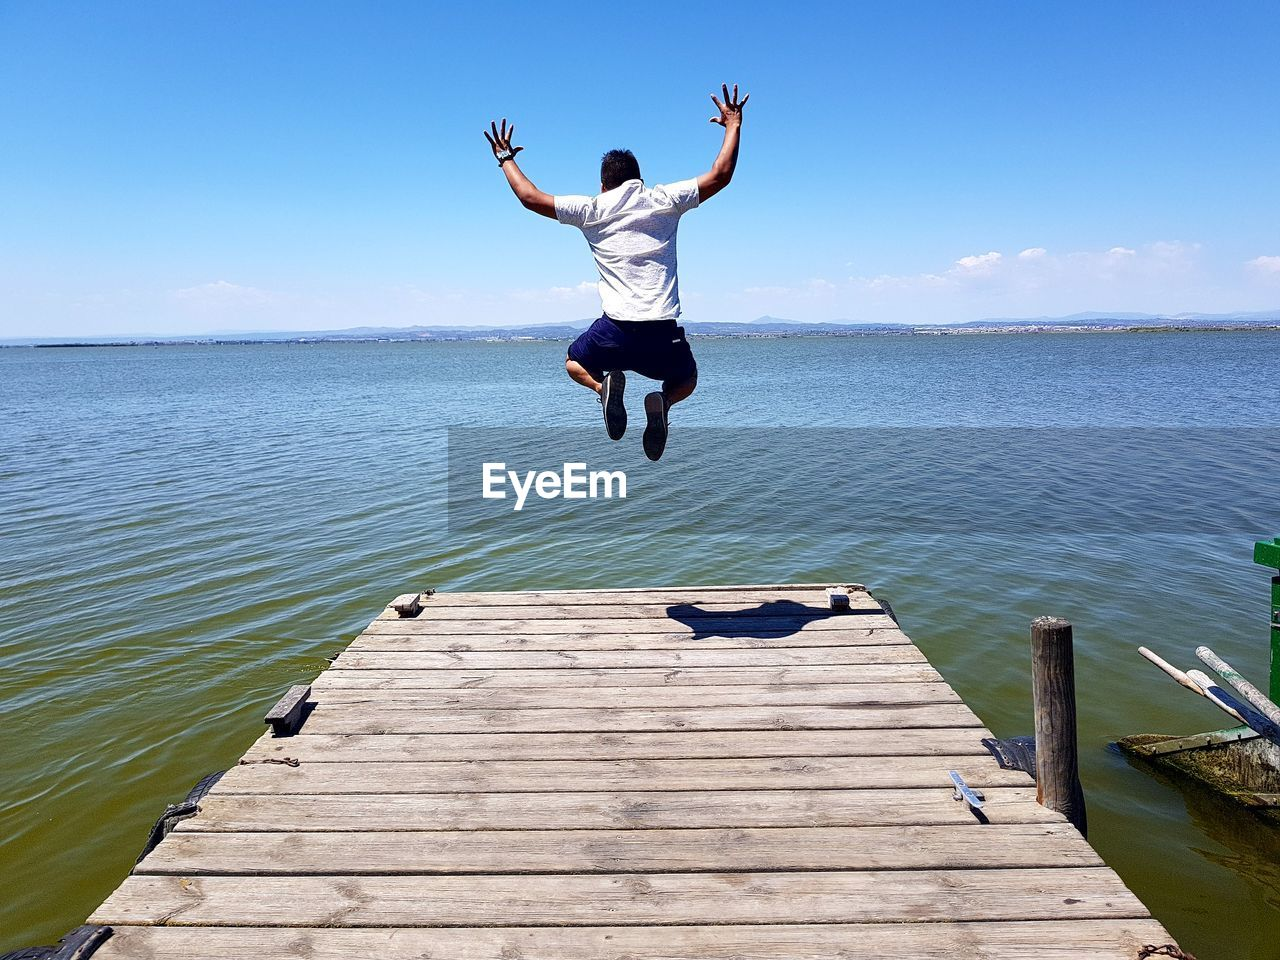 Rear View Of Man Jumping On Pier Over Sea Against Sky